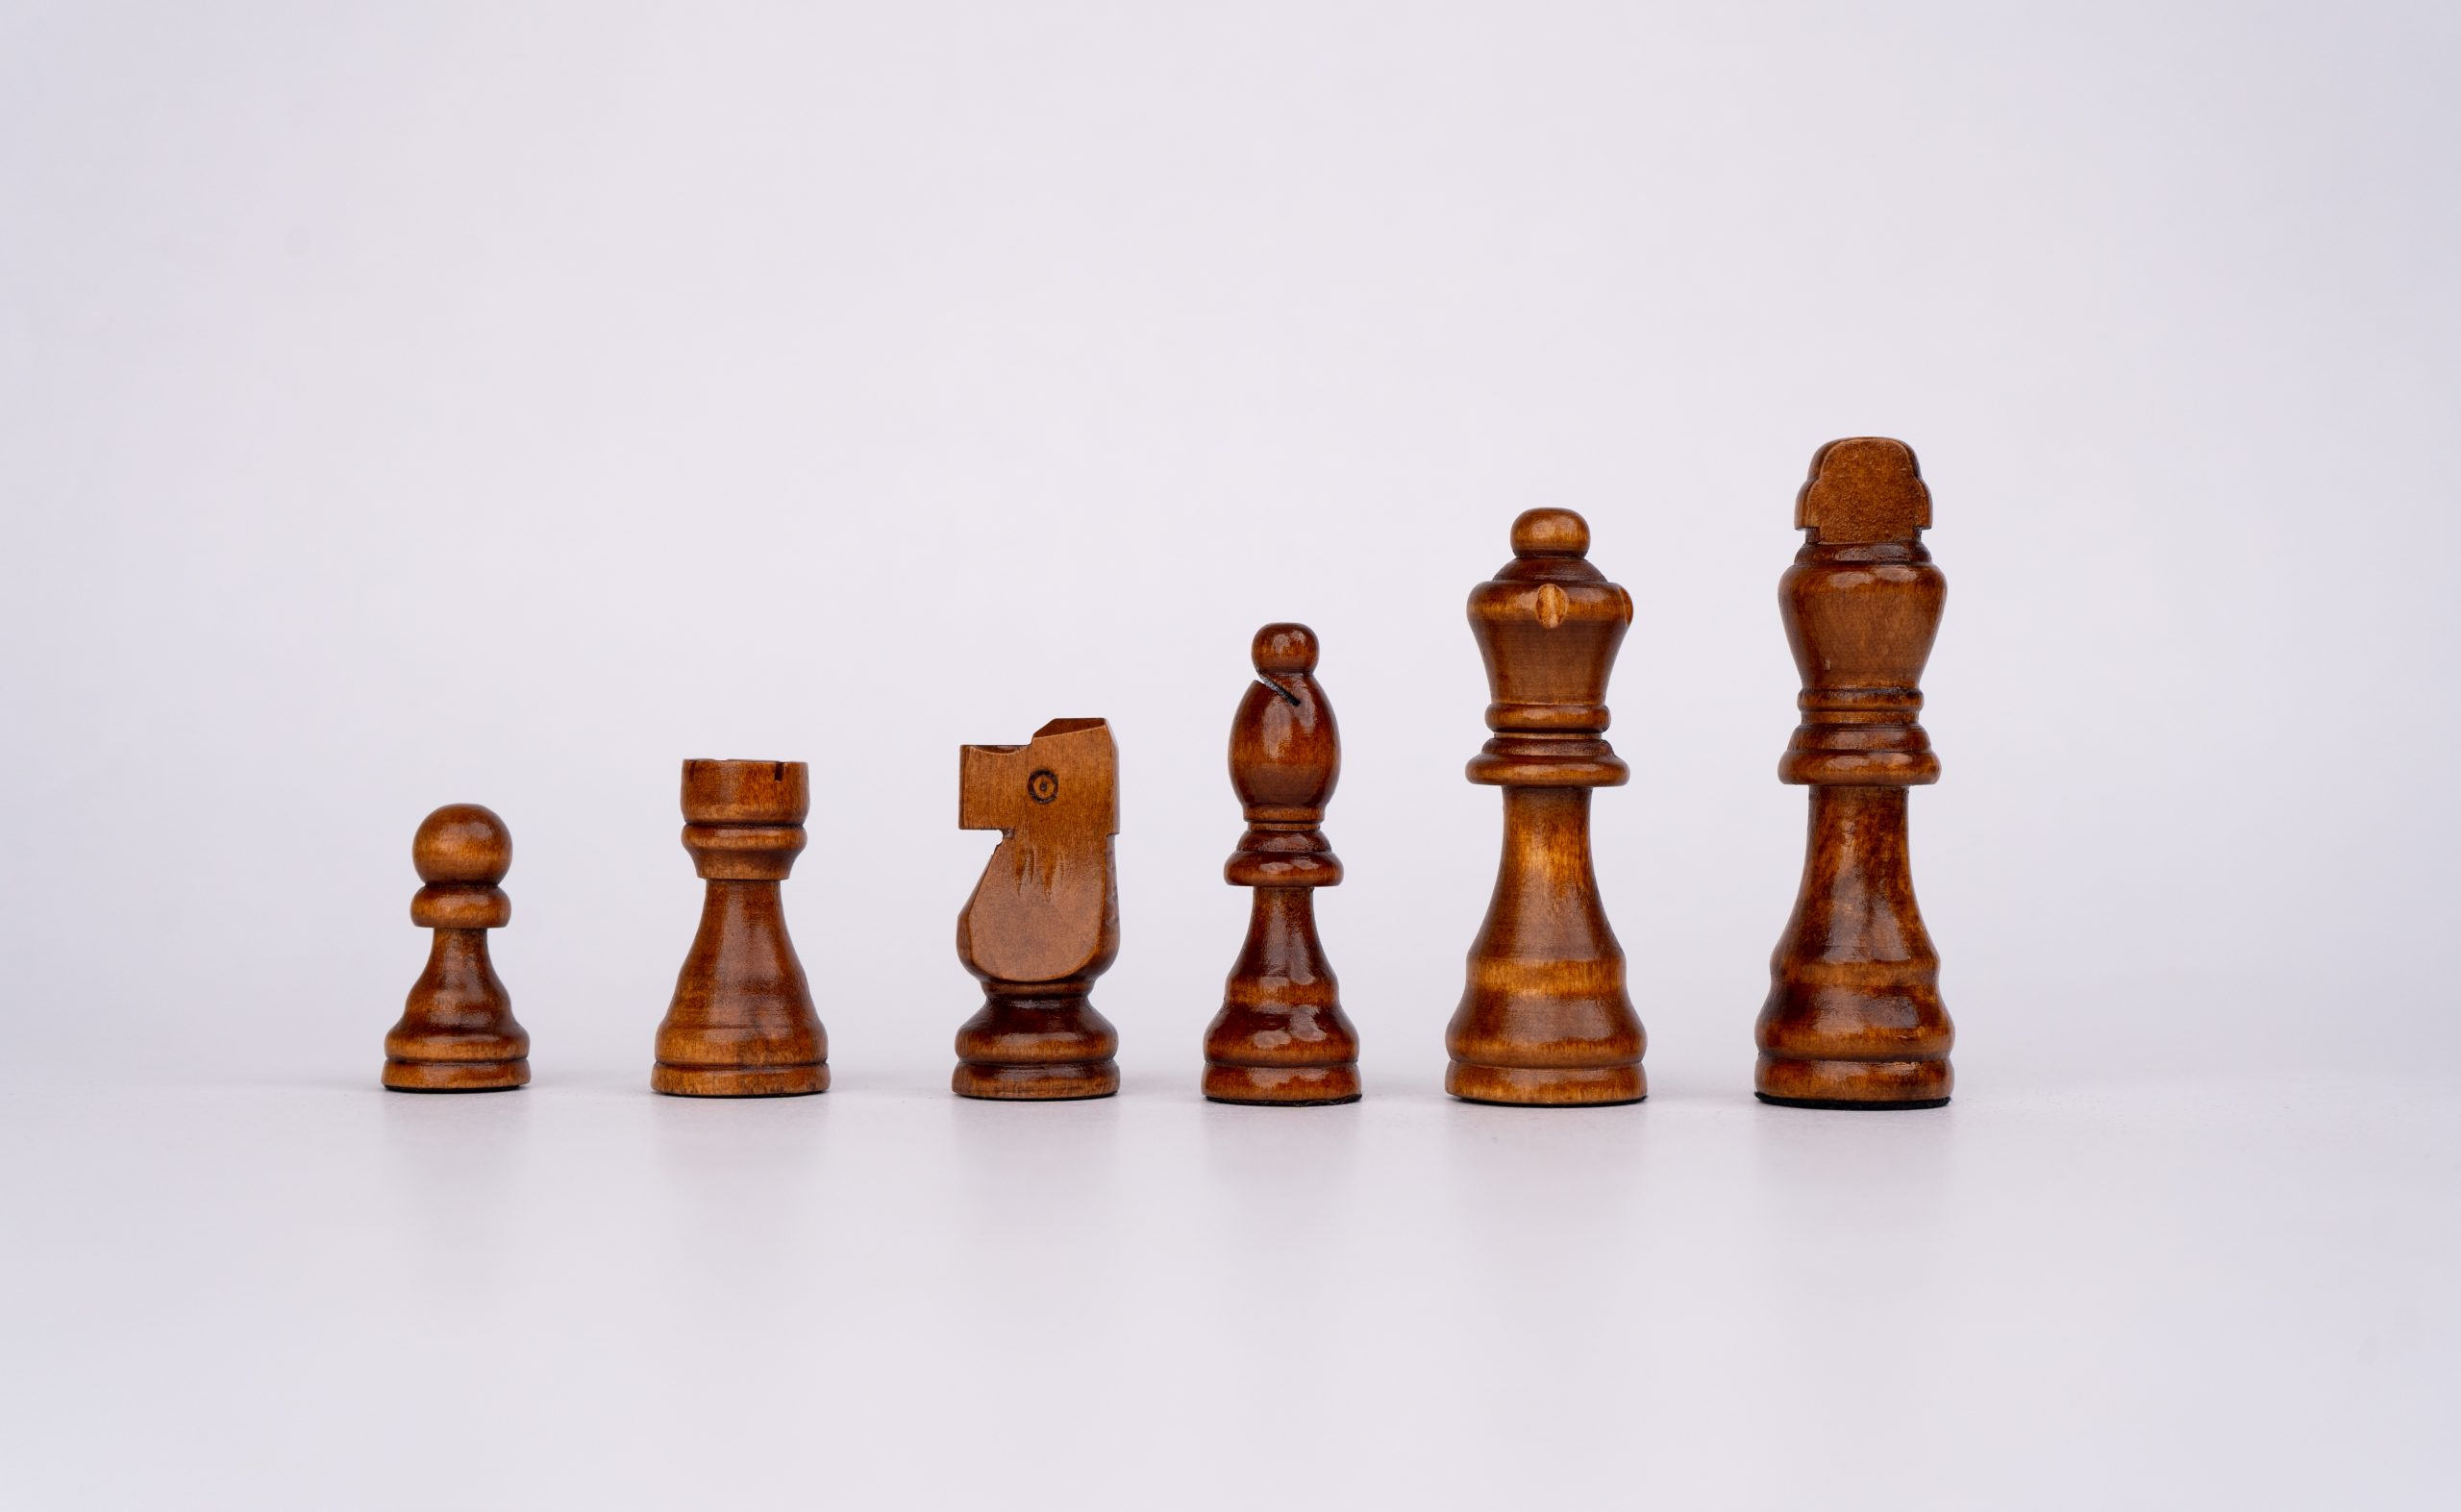 Black wooden chess pieces in formation